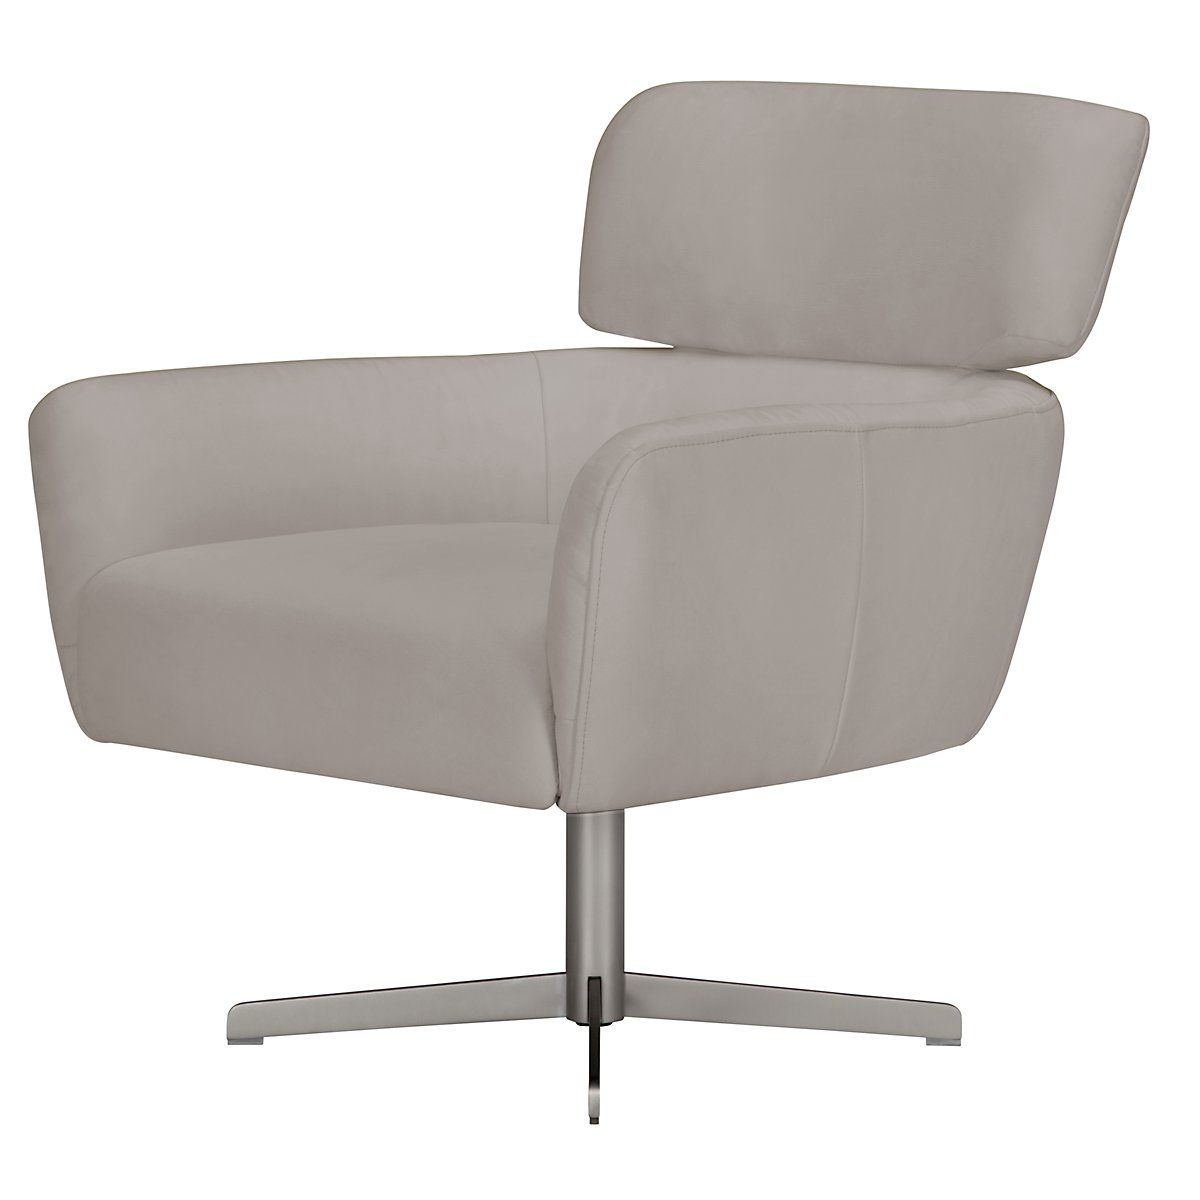 Widely Used Wynn Light Gray Microfiber Swivel Accent Chair (View 10 of 20)